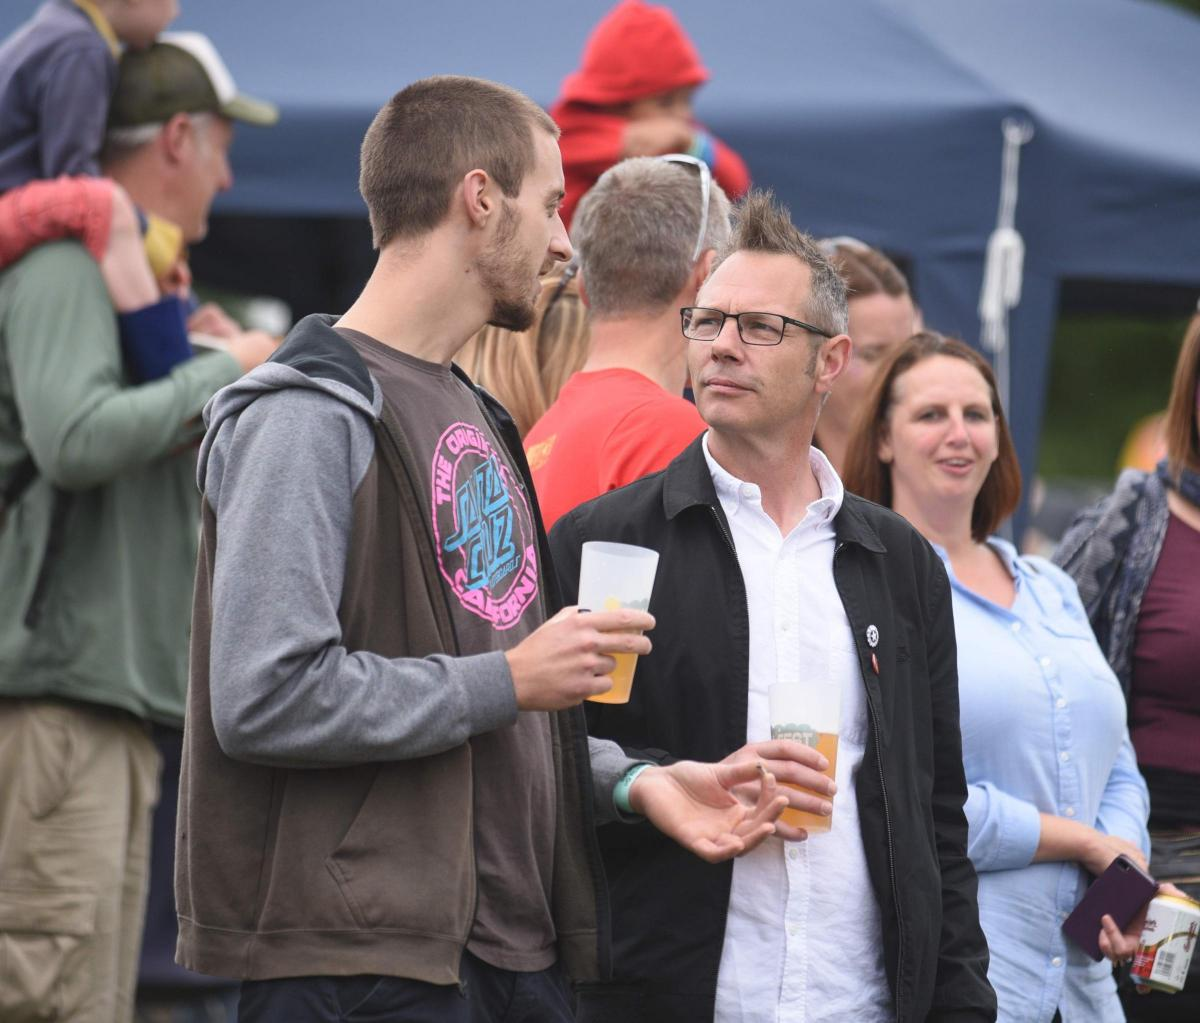 PICTURES: Dick and Dom entertain crowds at Chalfest 2017